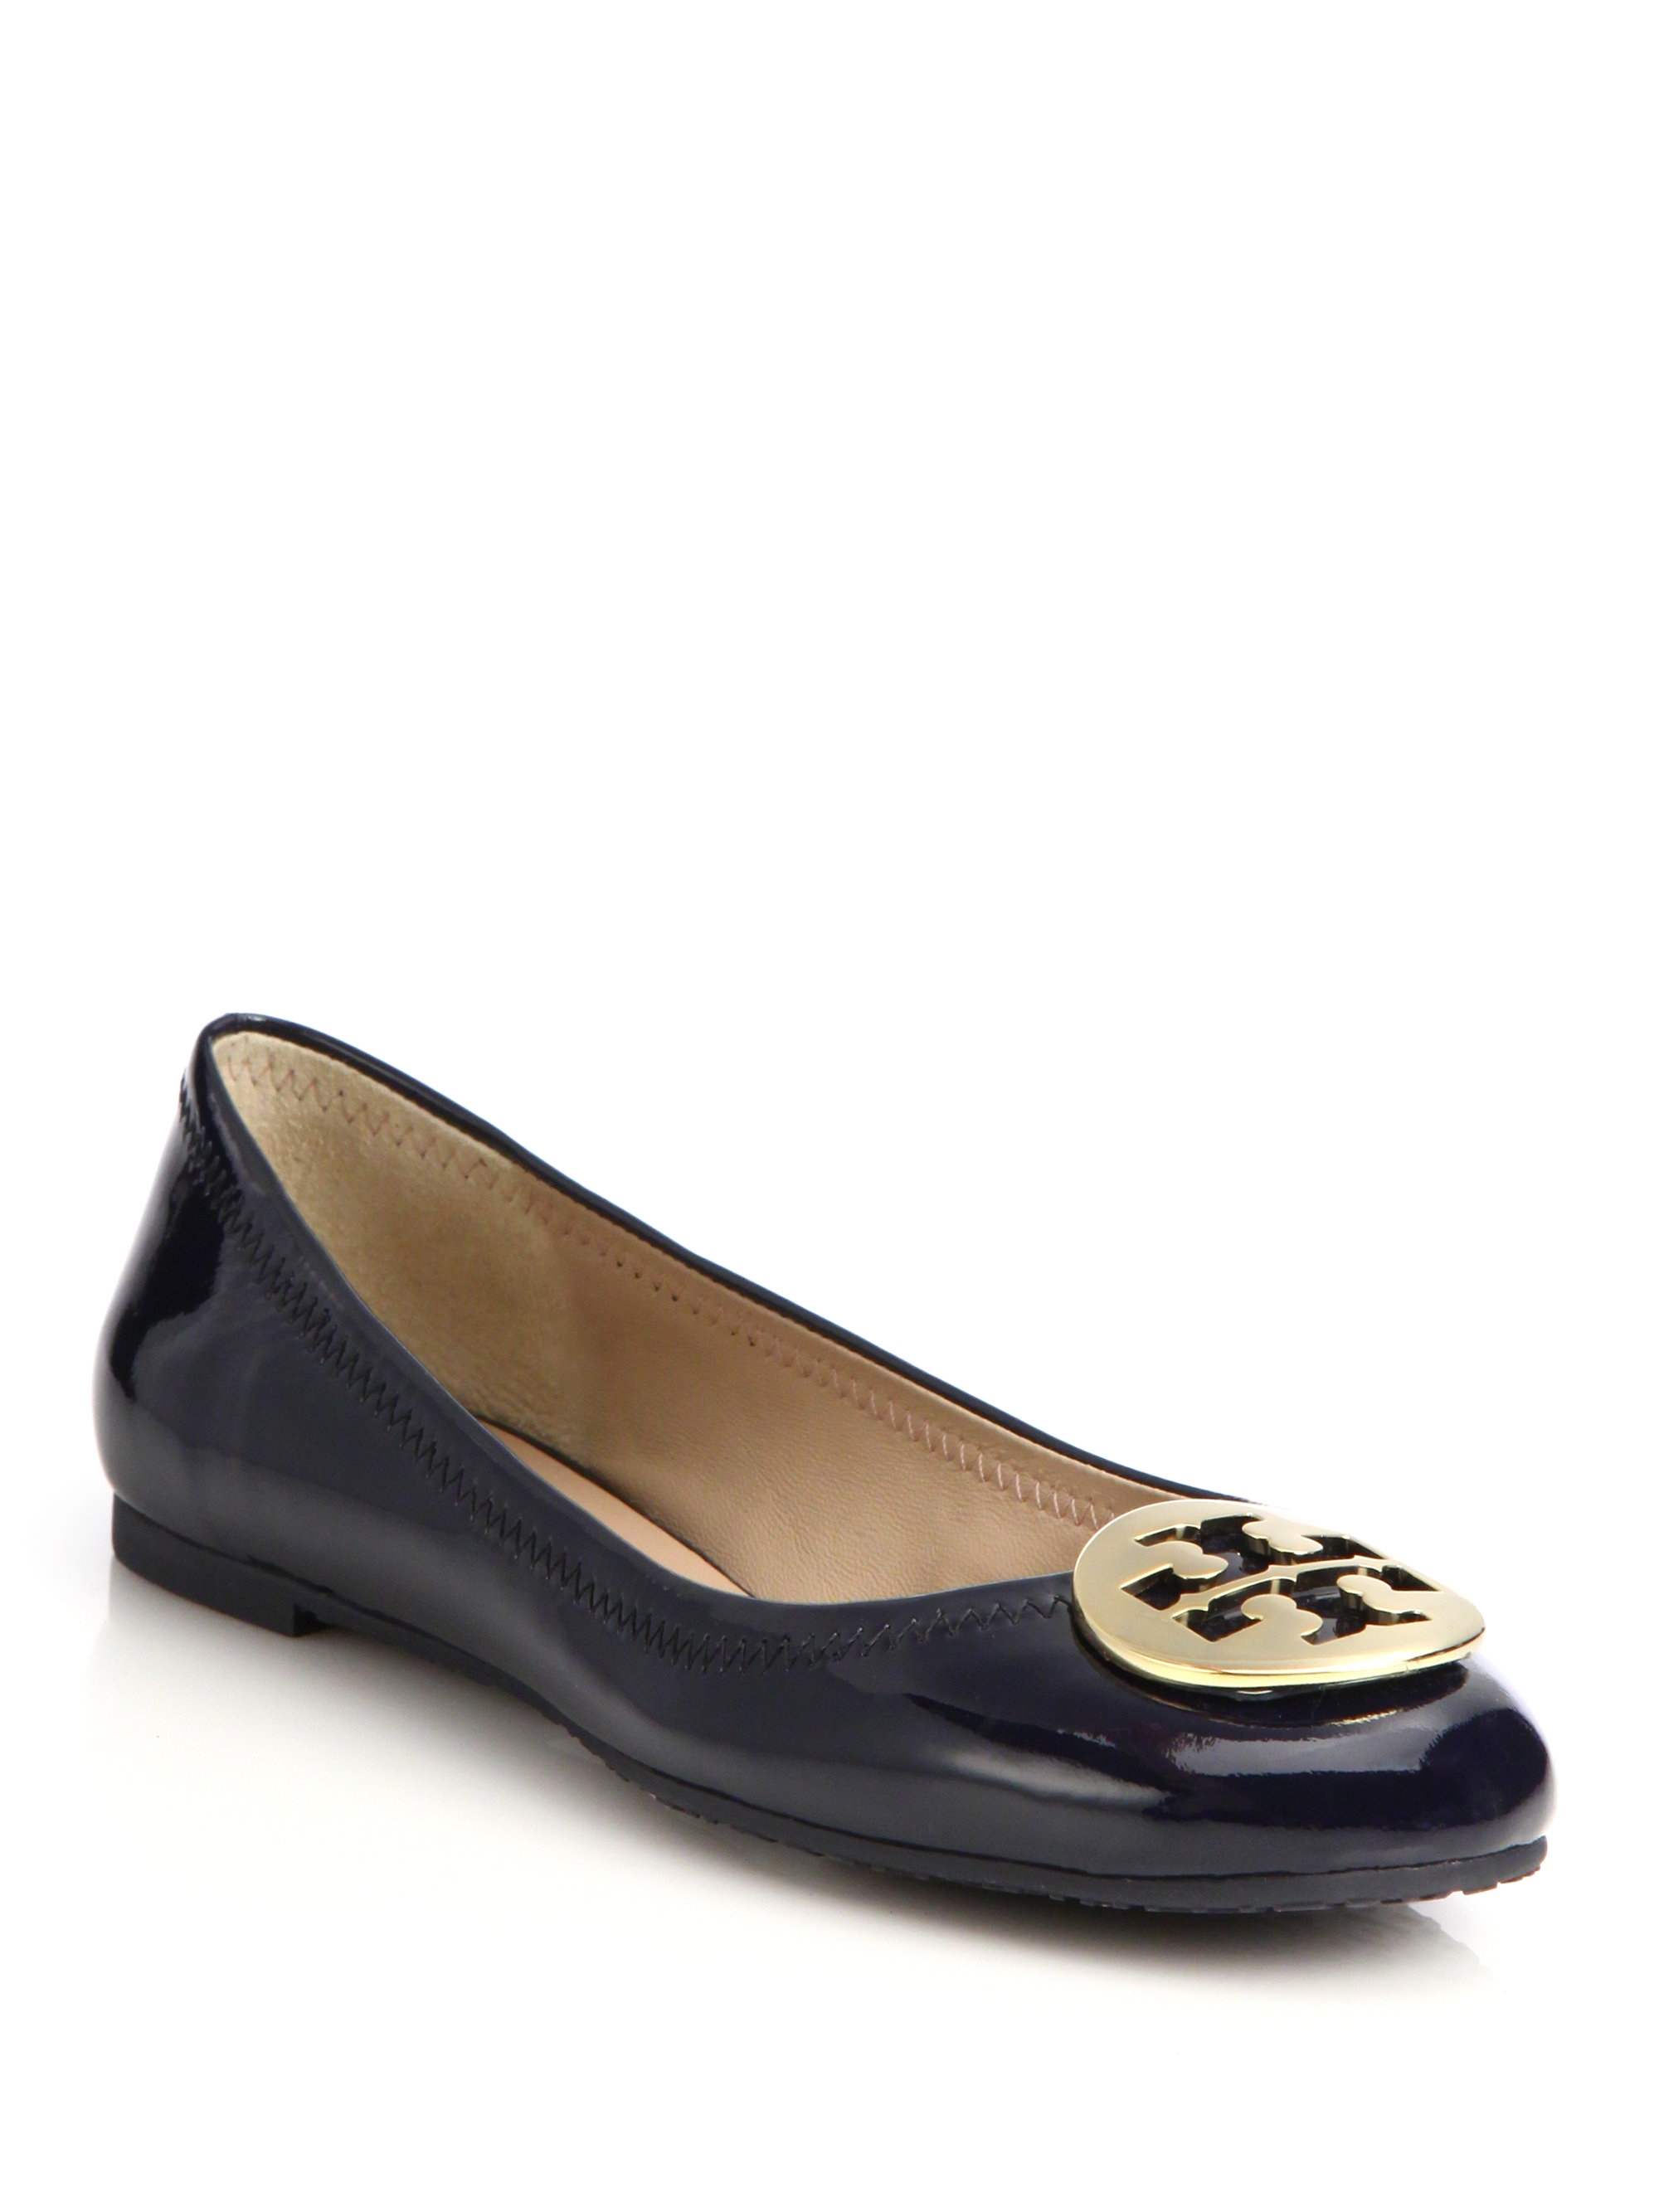 472b20bf5 ... where can i buy lyst tory burch reva patent leather ballet flats in red  c3222 bbda8